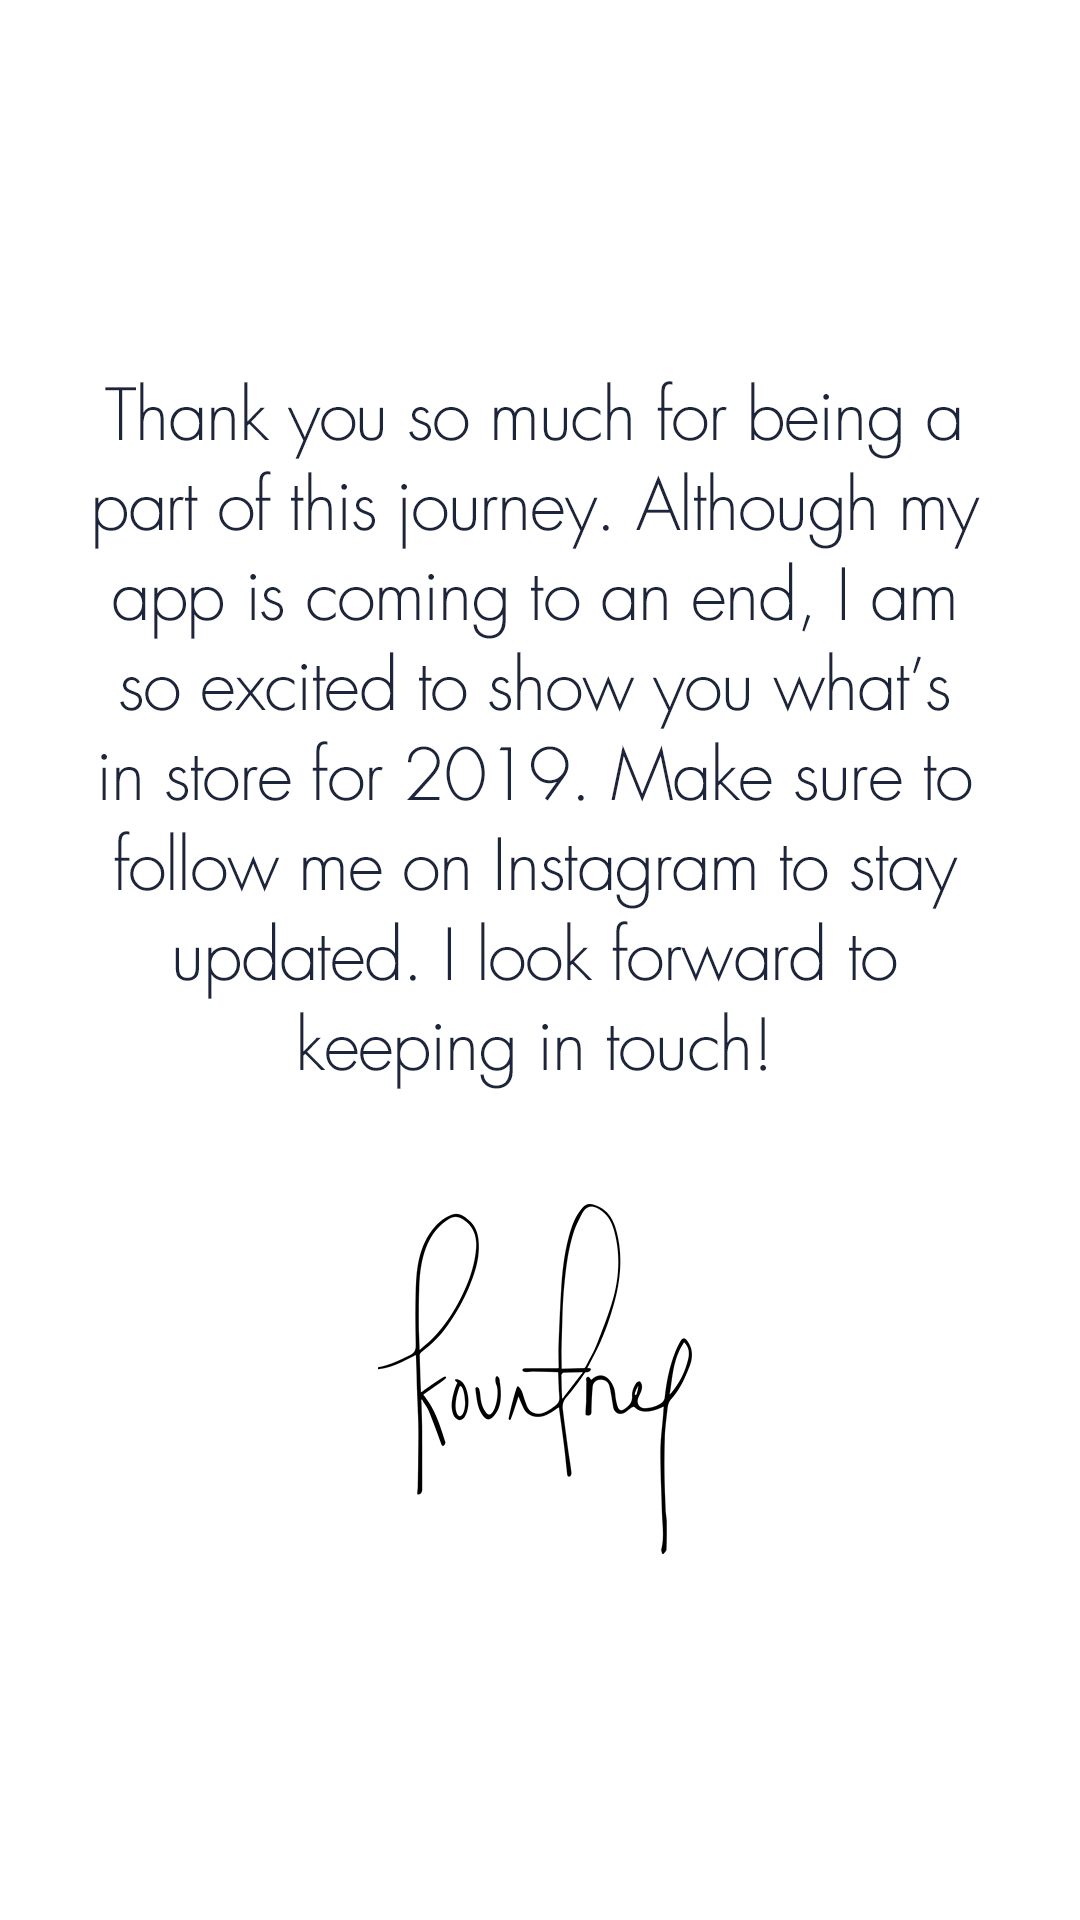 Thank you so much for being a part of this journey. Although my app is coming to an end, I am so excited to show you what's in store for 2019. Make sure to follow me on Instagram to stay updated. I look forward to keeping in touch!